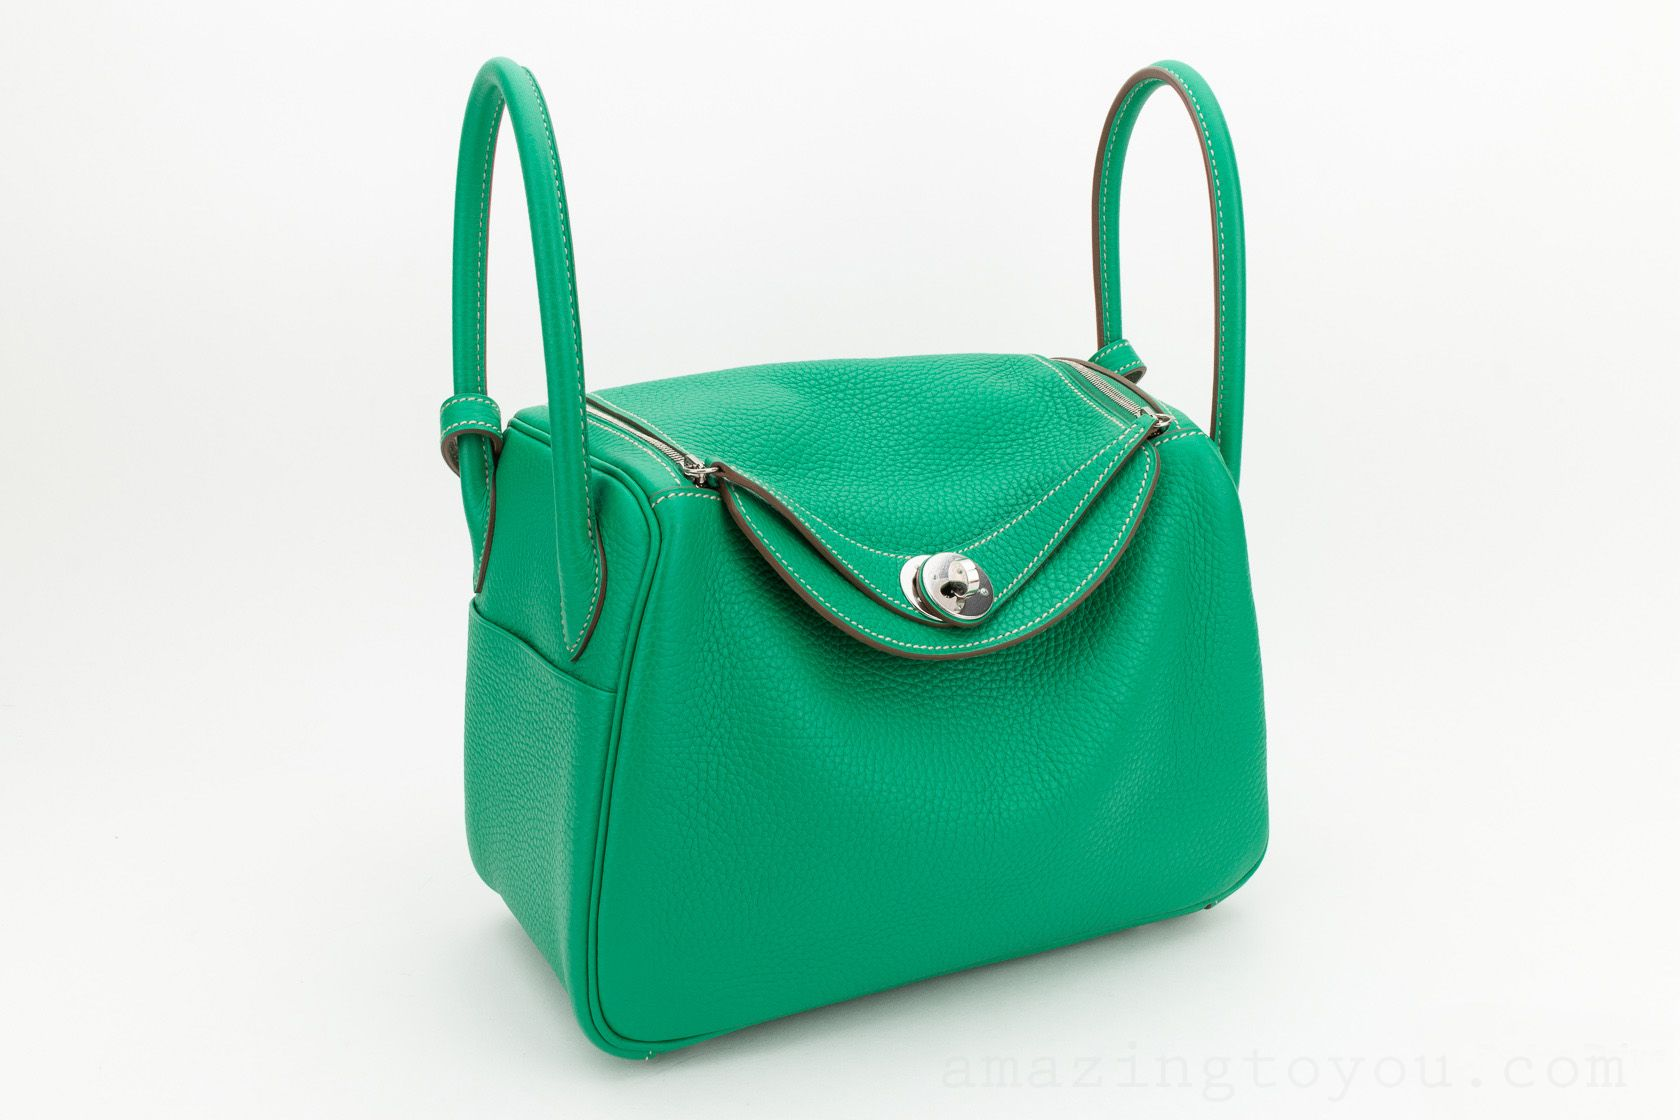 Hermes Lindy 26 Menthe/Etoupe Clemence